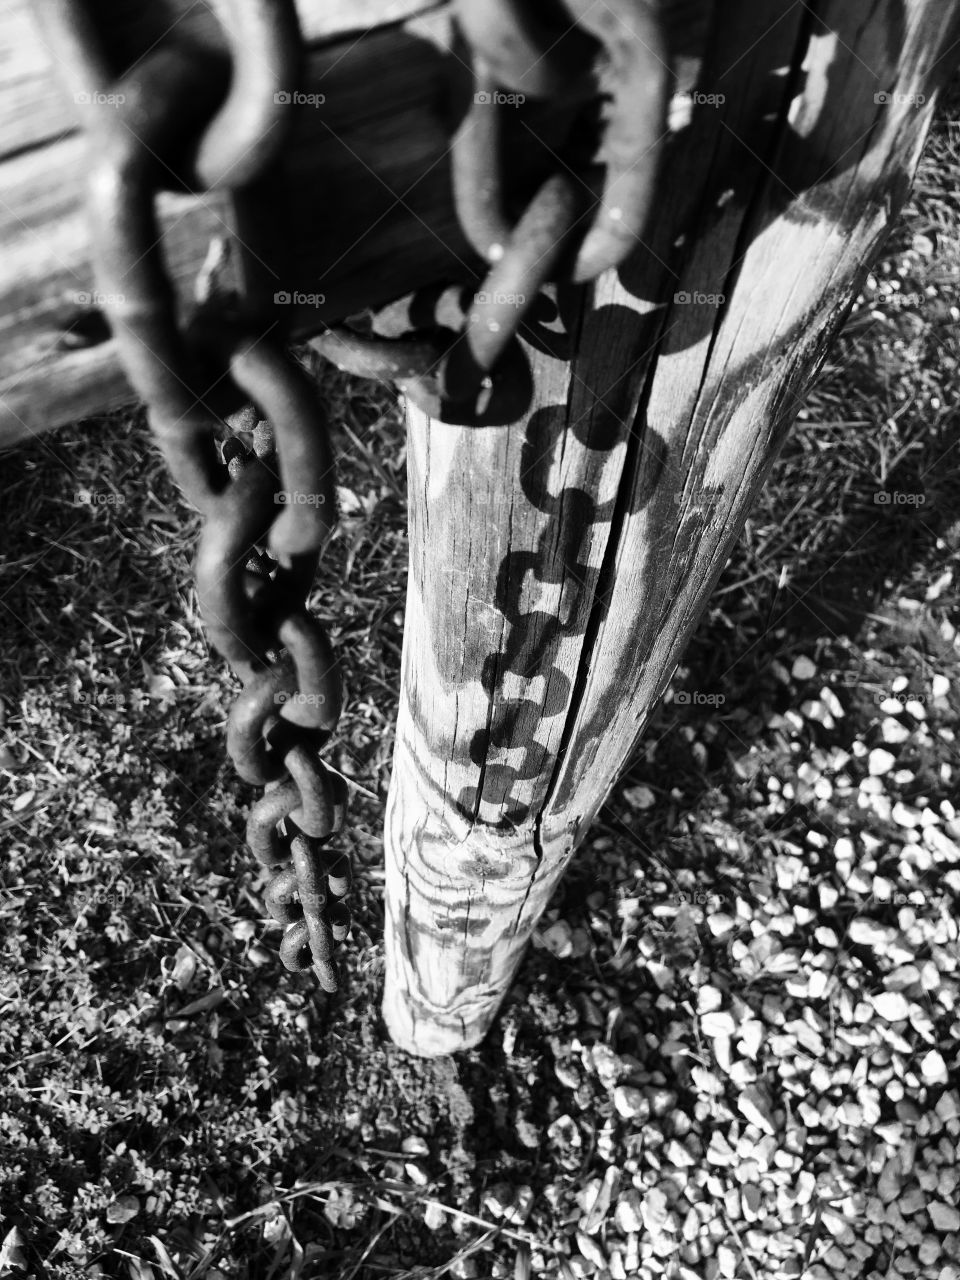 Rusted chain resting on weathered fence waiting for the next opportunity to work